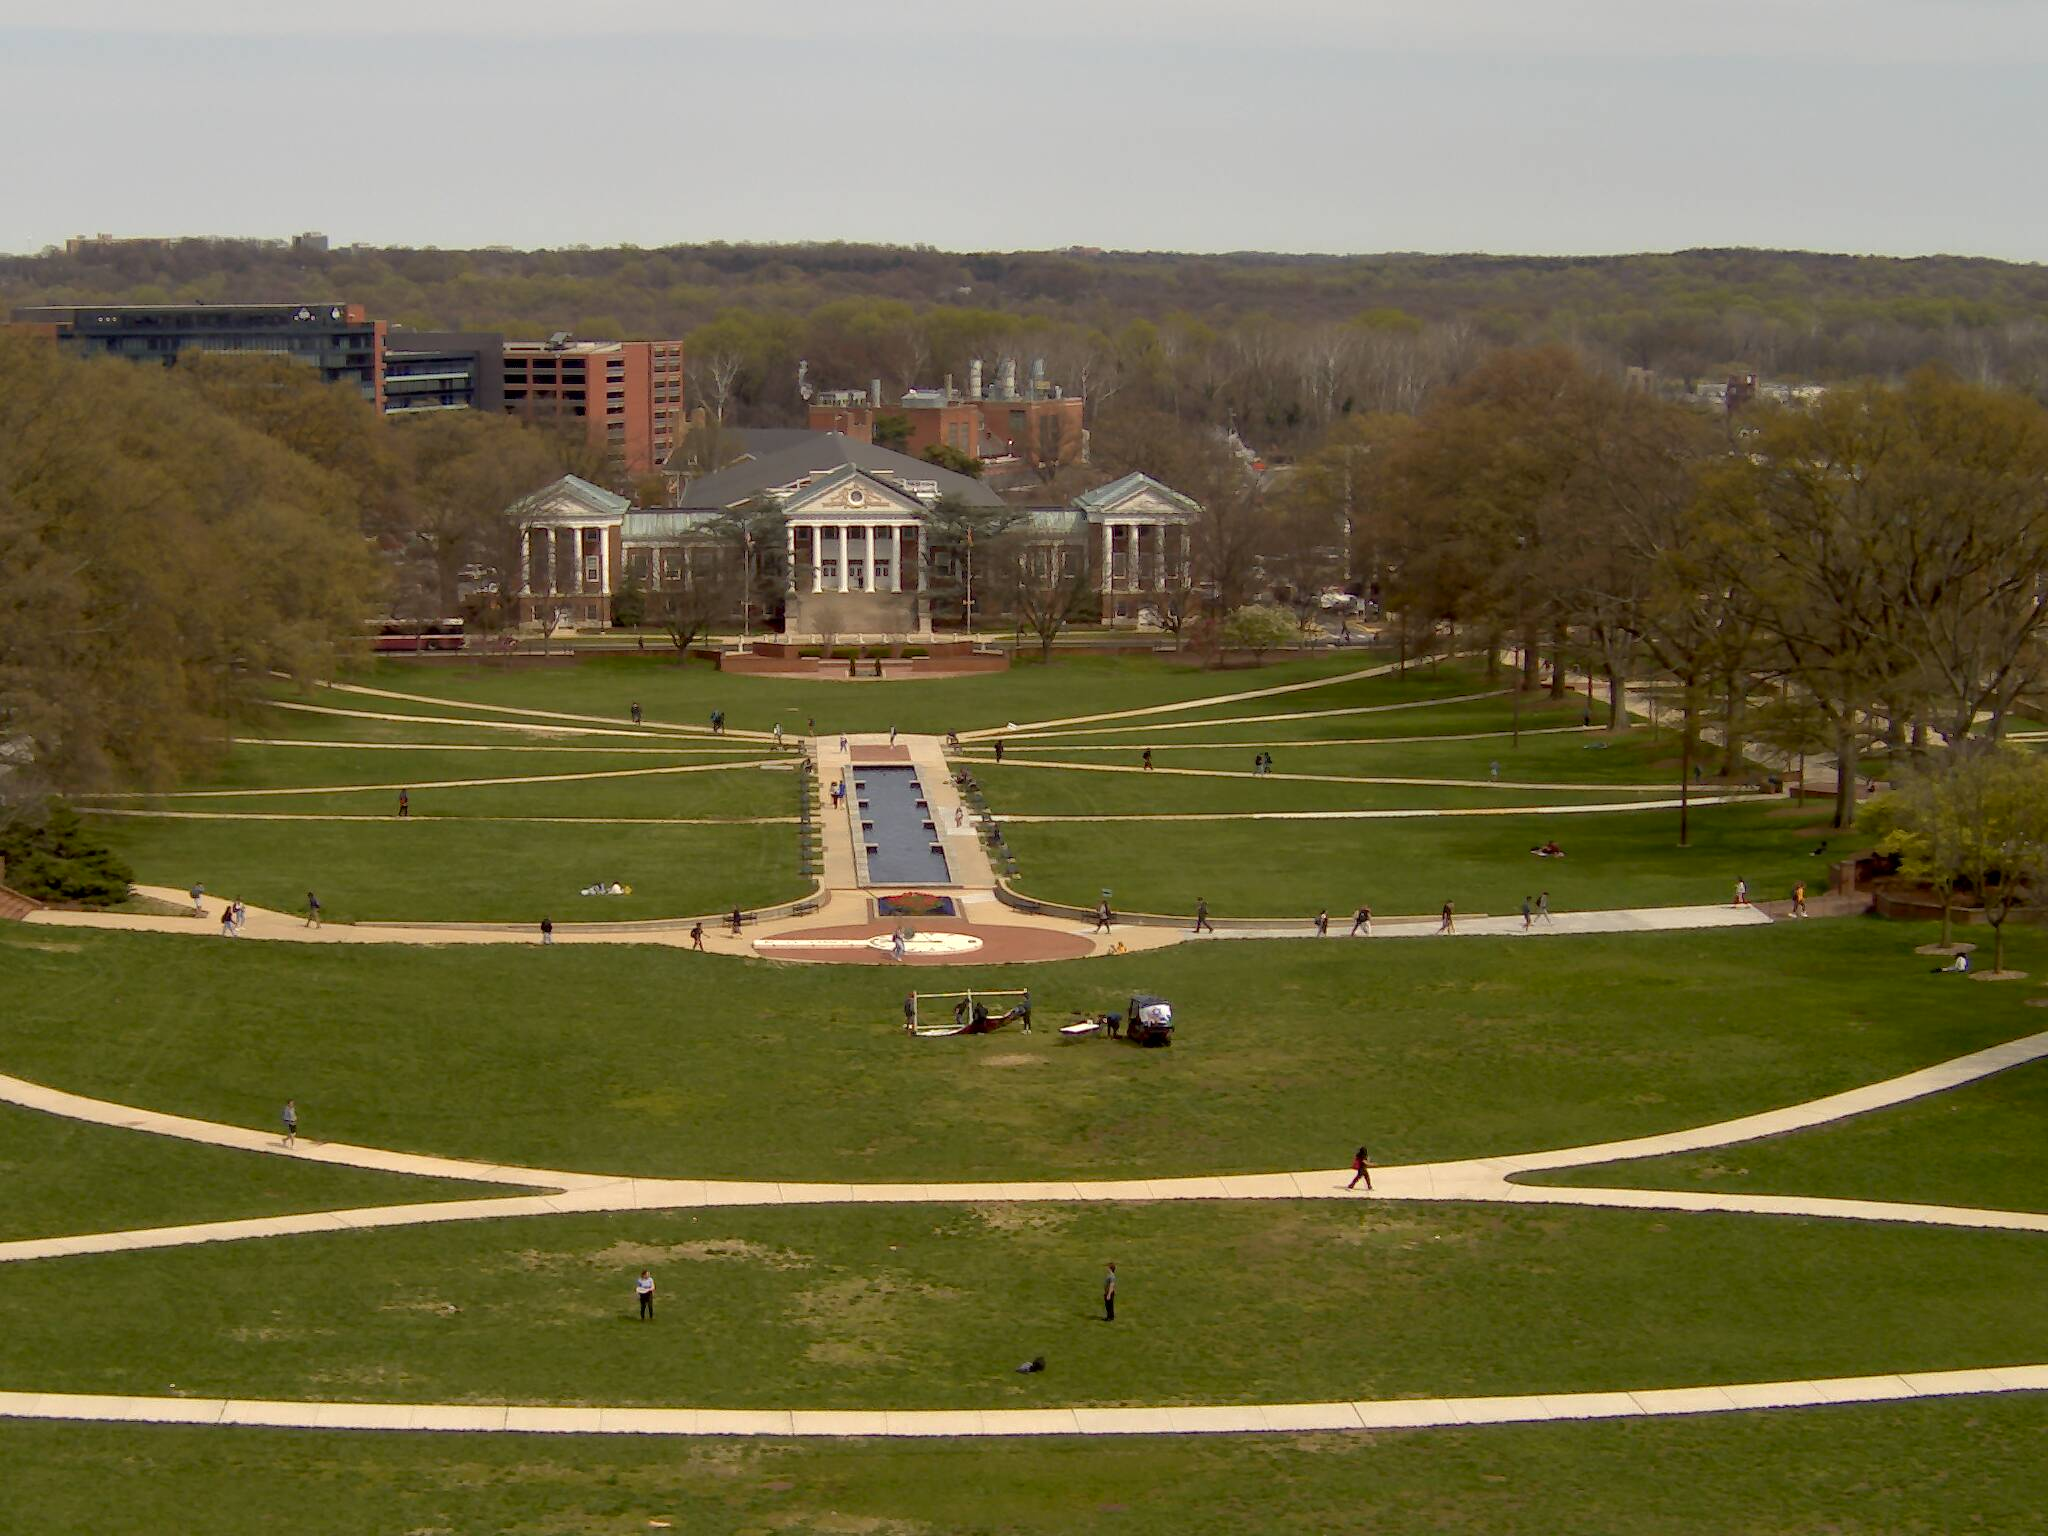 University of Maryland - McKeldin Mall